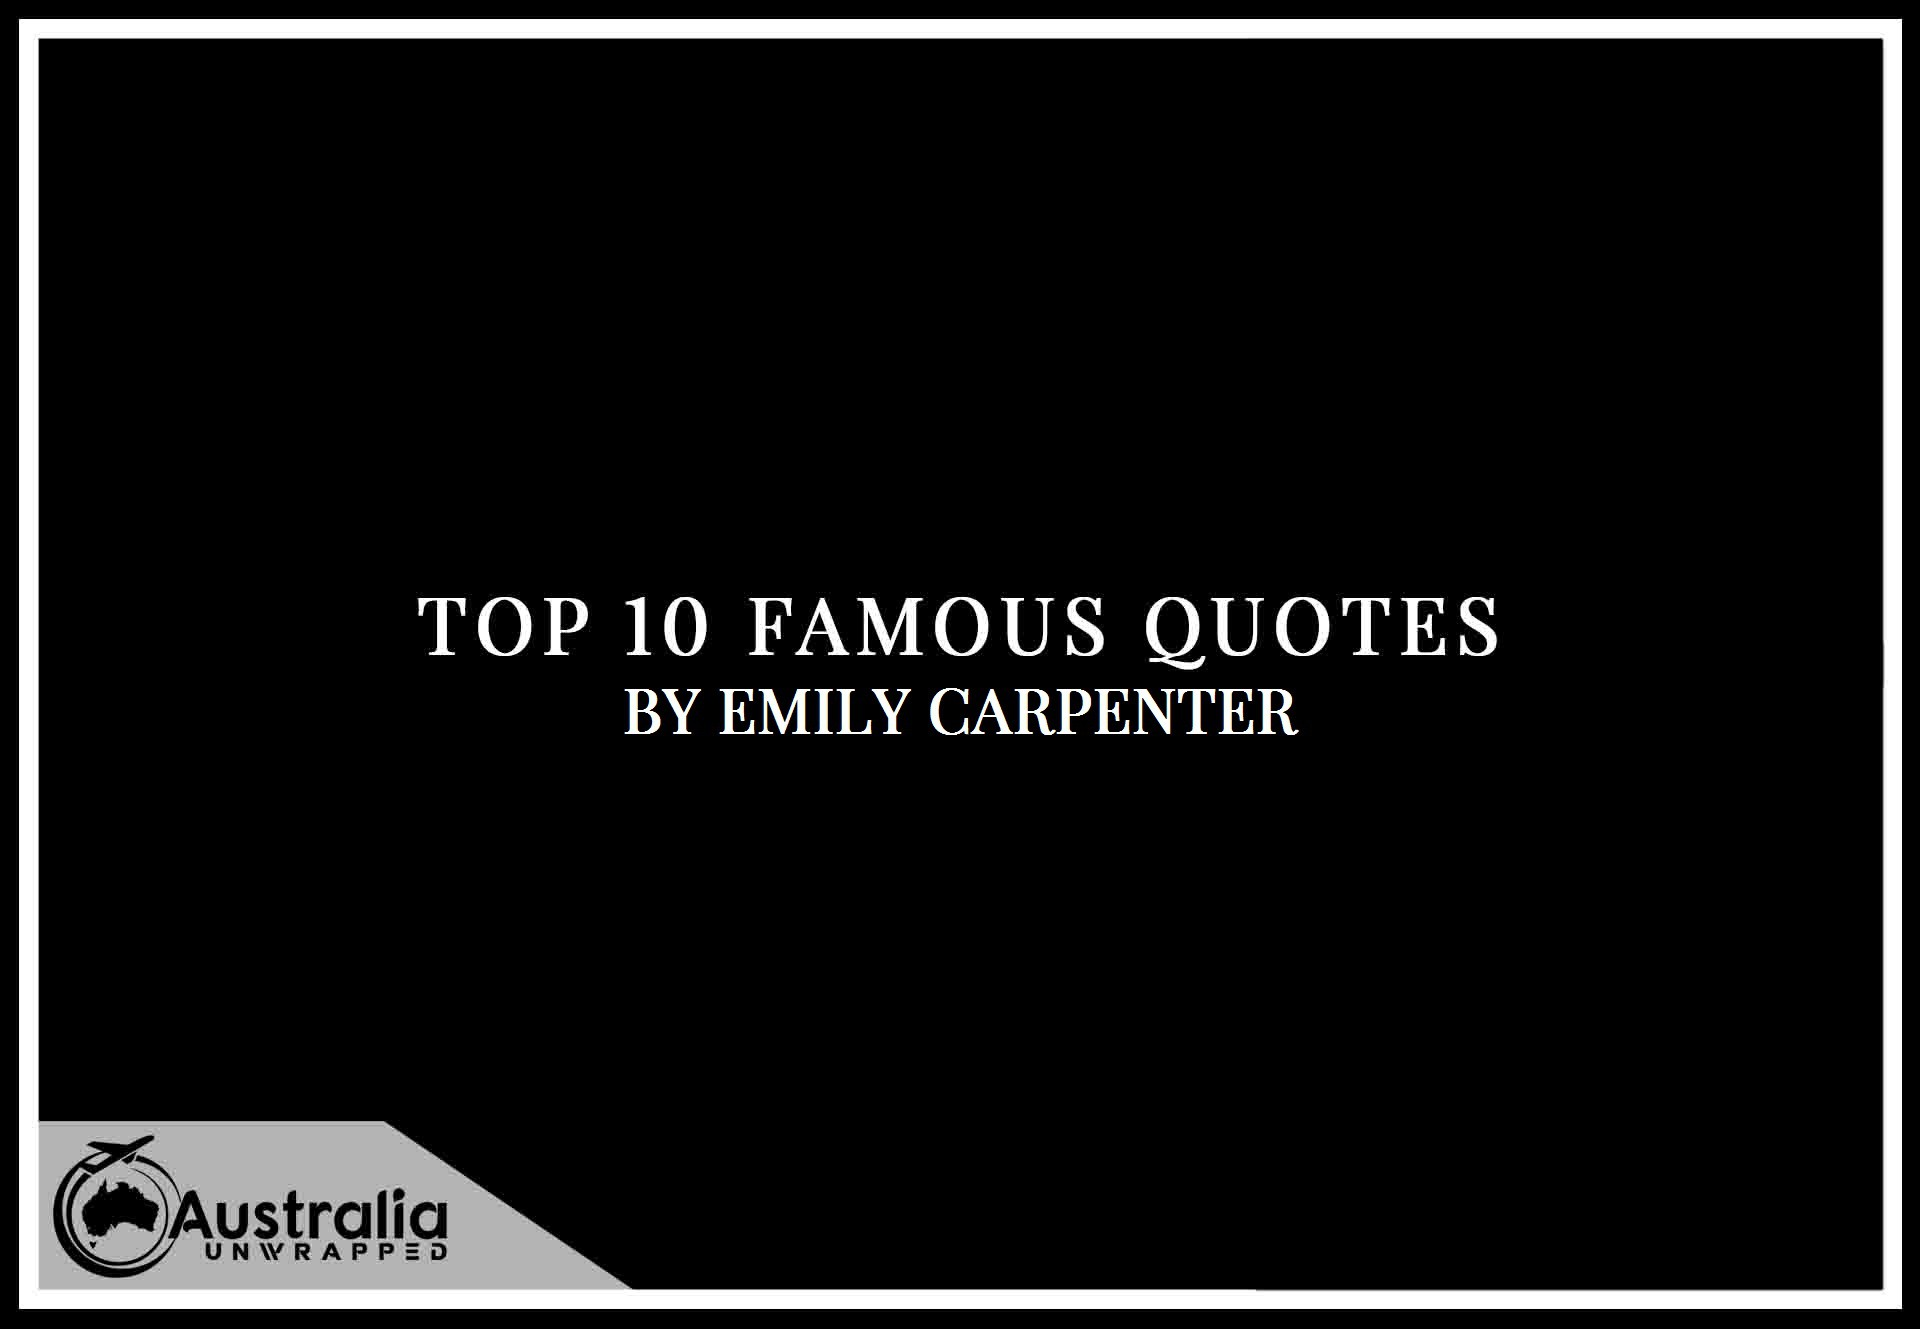 Emily Carpenter's Top 10 Popular and Famous Quotes